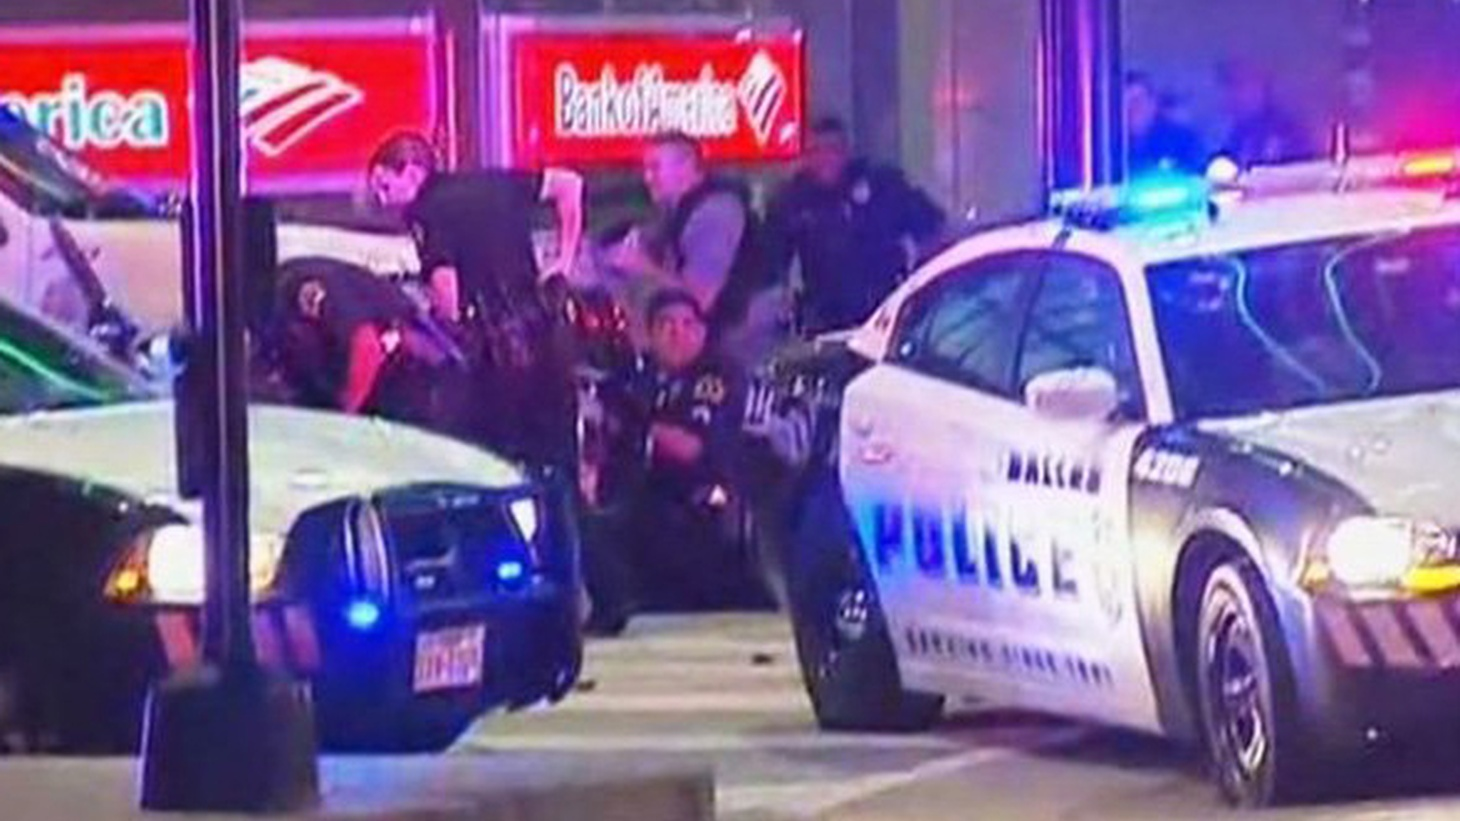 A sniper attack in Dallas left five officers dead and seven wounded after a peaceful protest against police shootings became a nightmare. To a nation already stunned by live video of the aftermath of a fatal police shooting of a motorist in Minnesota, the Texas massacre was one more stunning blow.